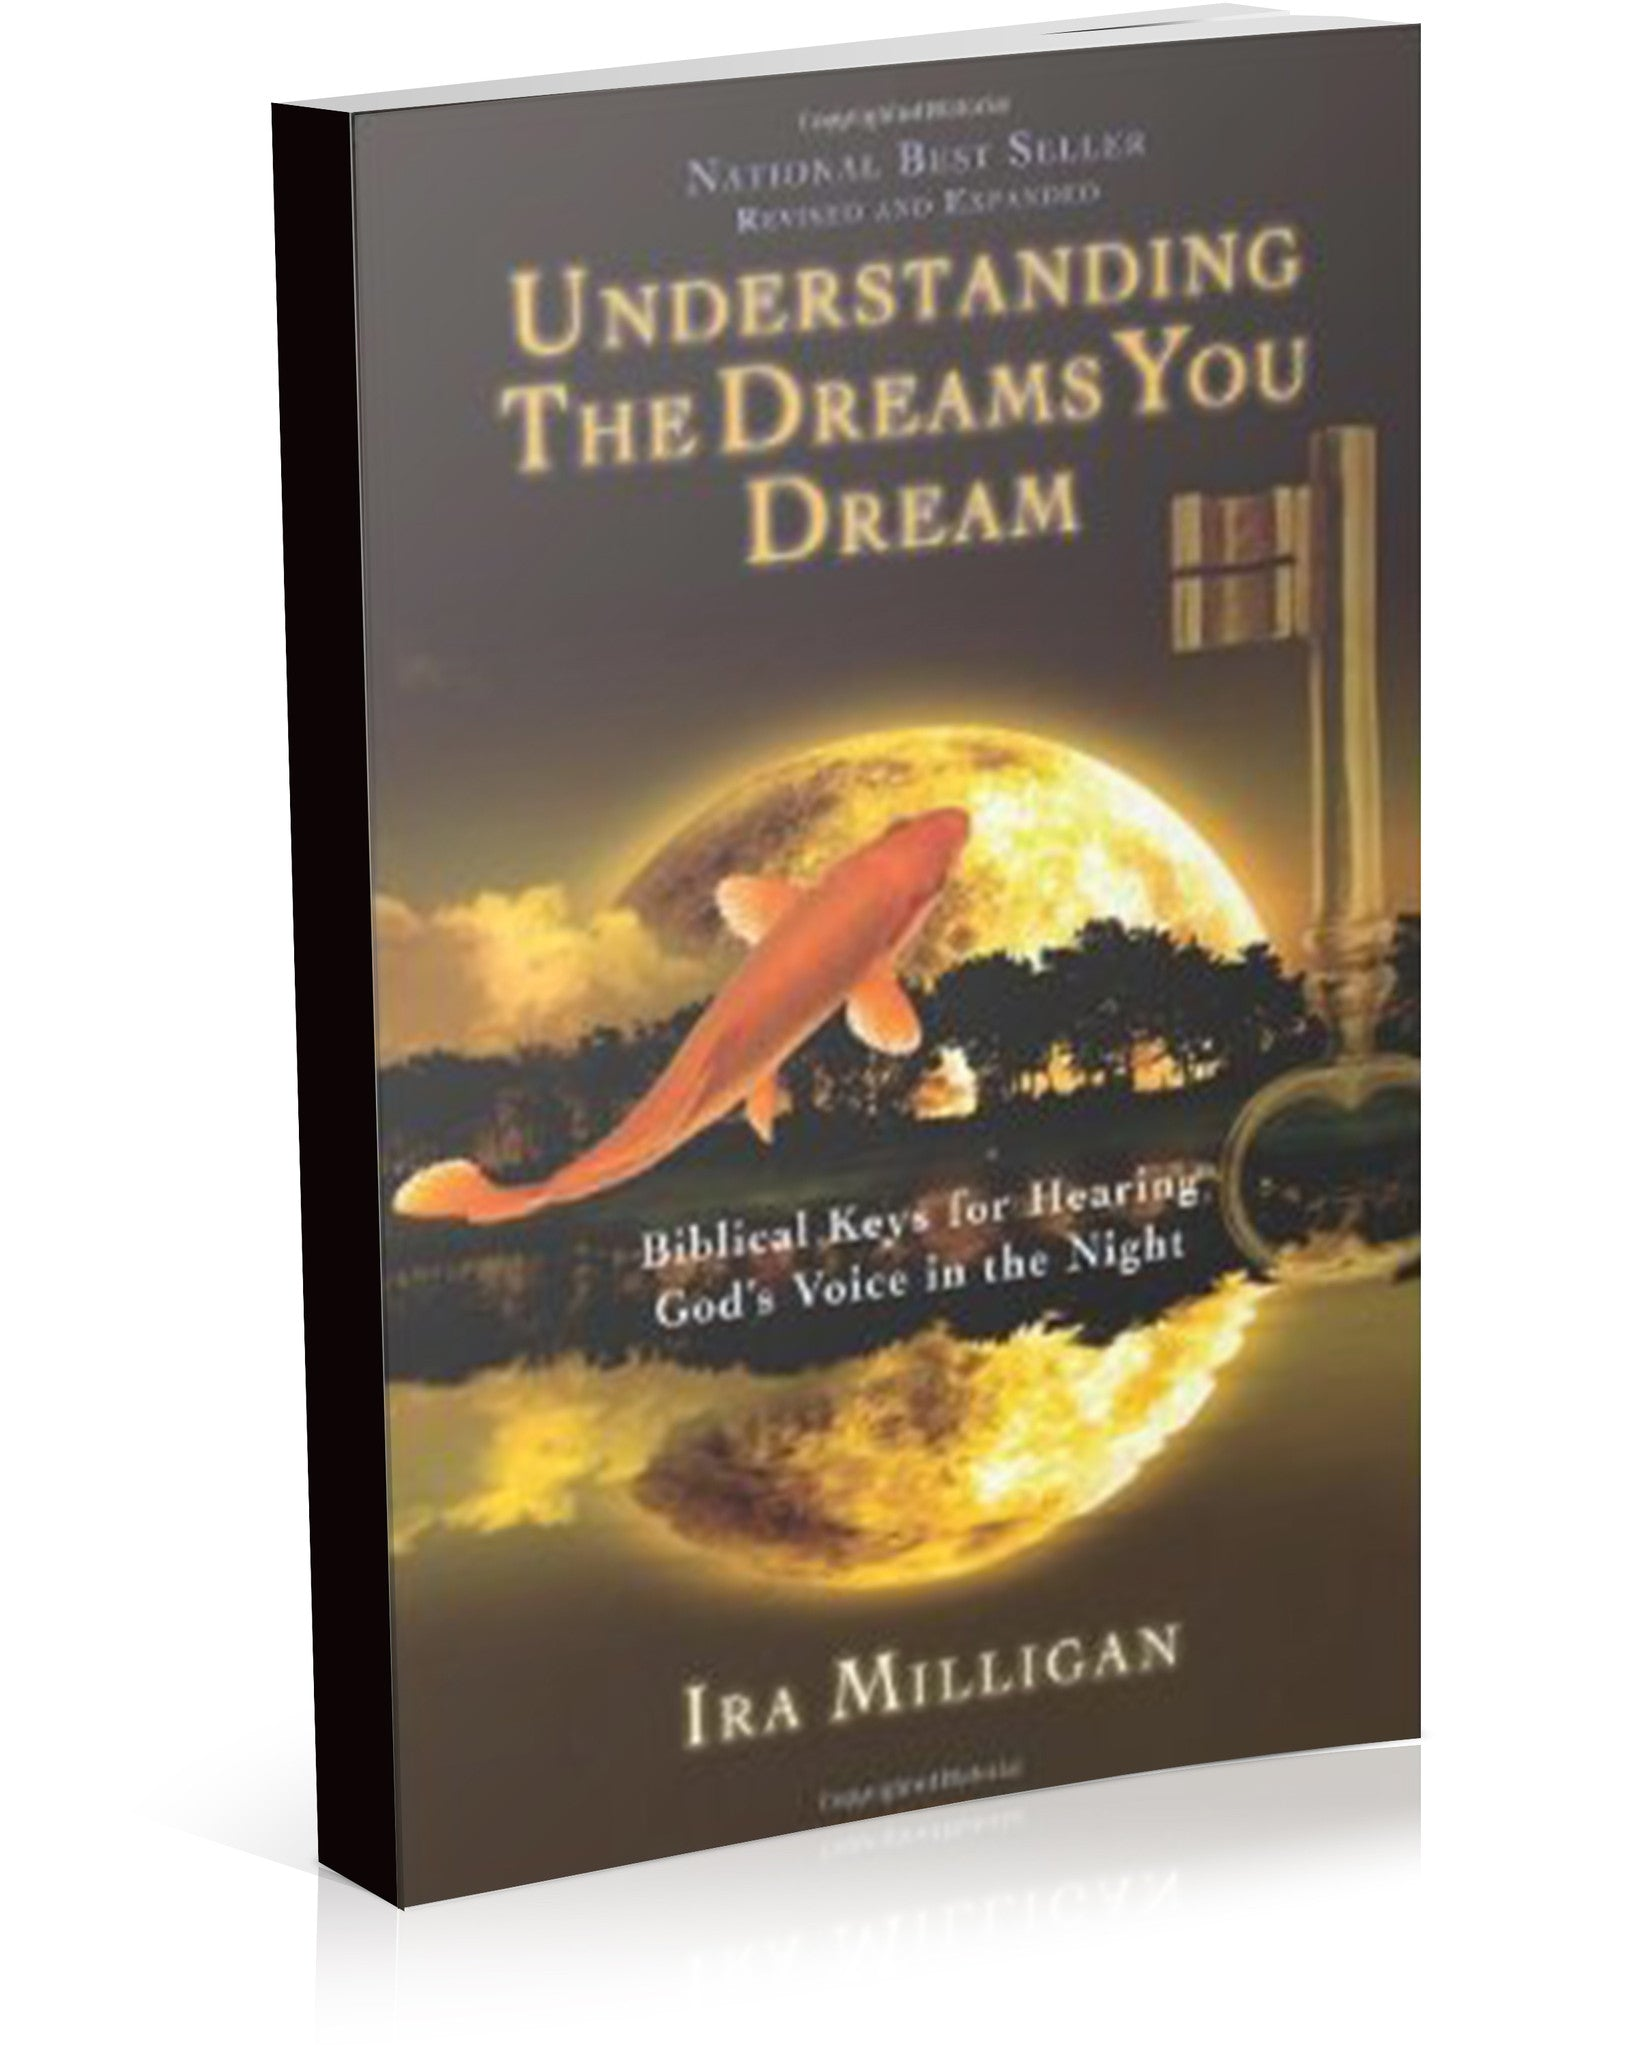 The keys are a dream book. Dream interpretation - to close the door on the key 21